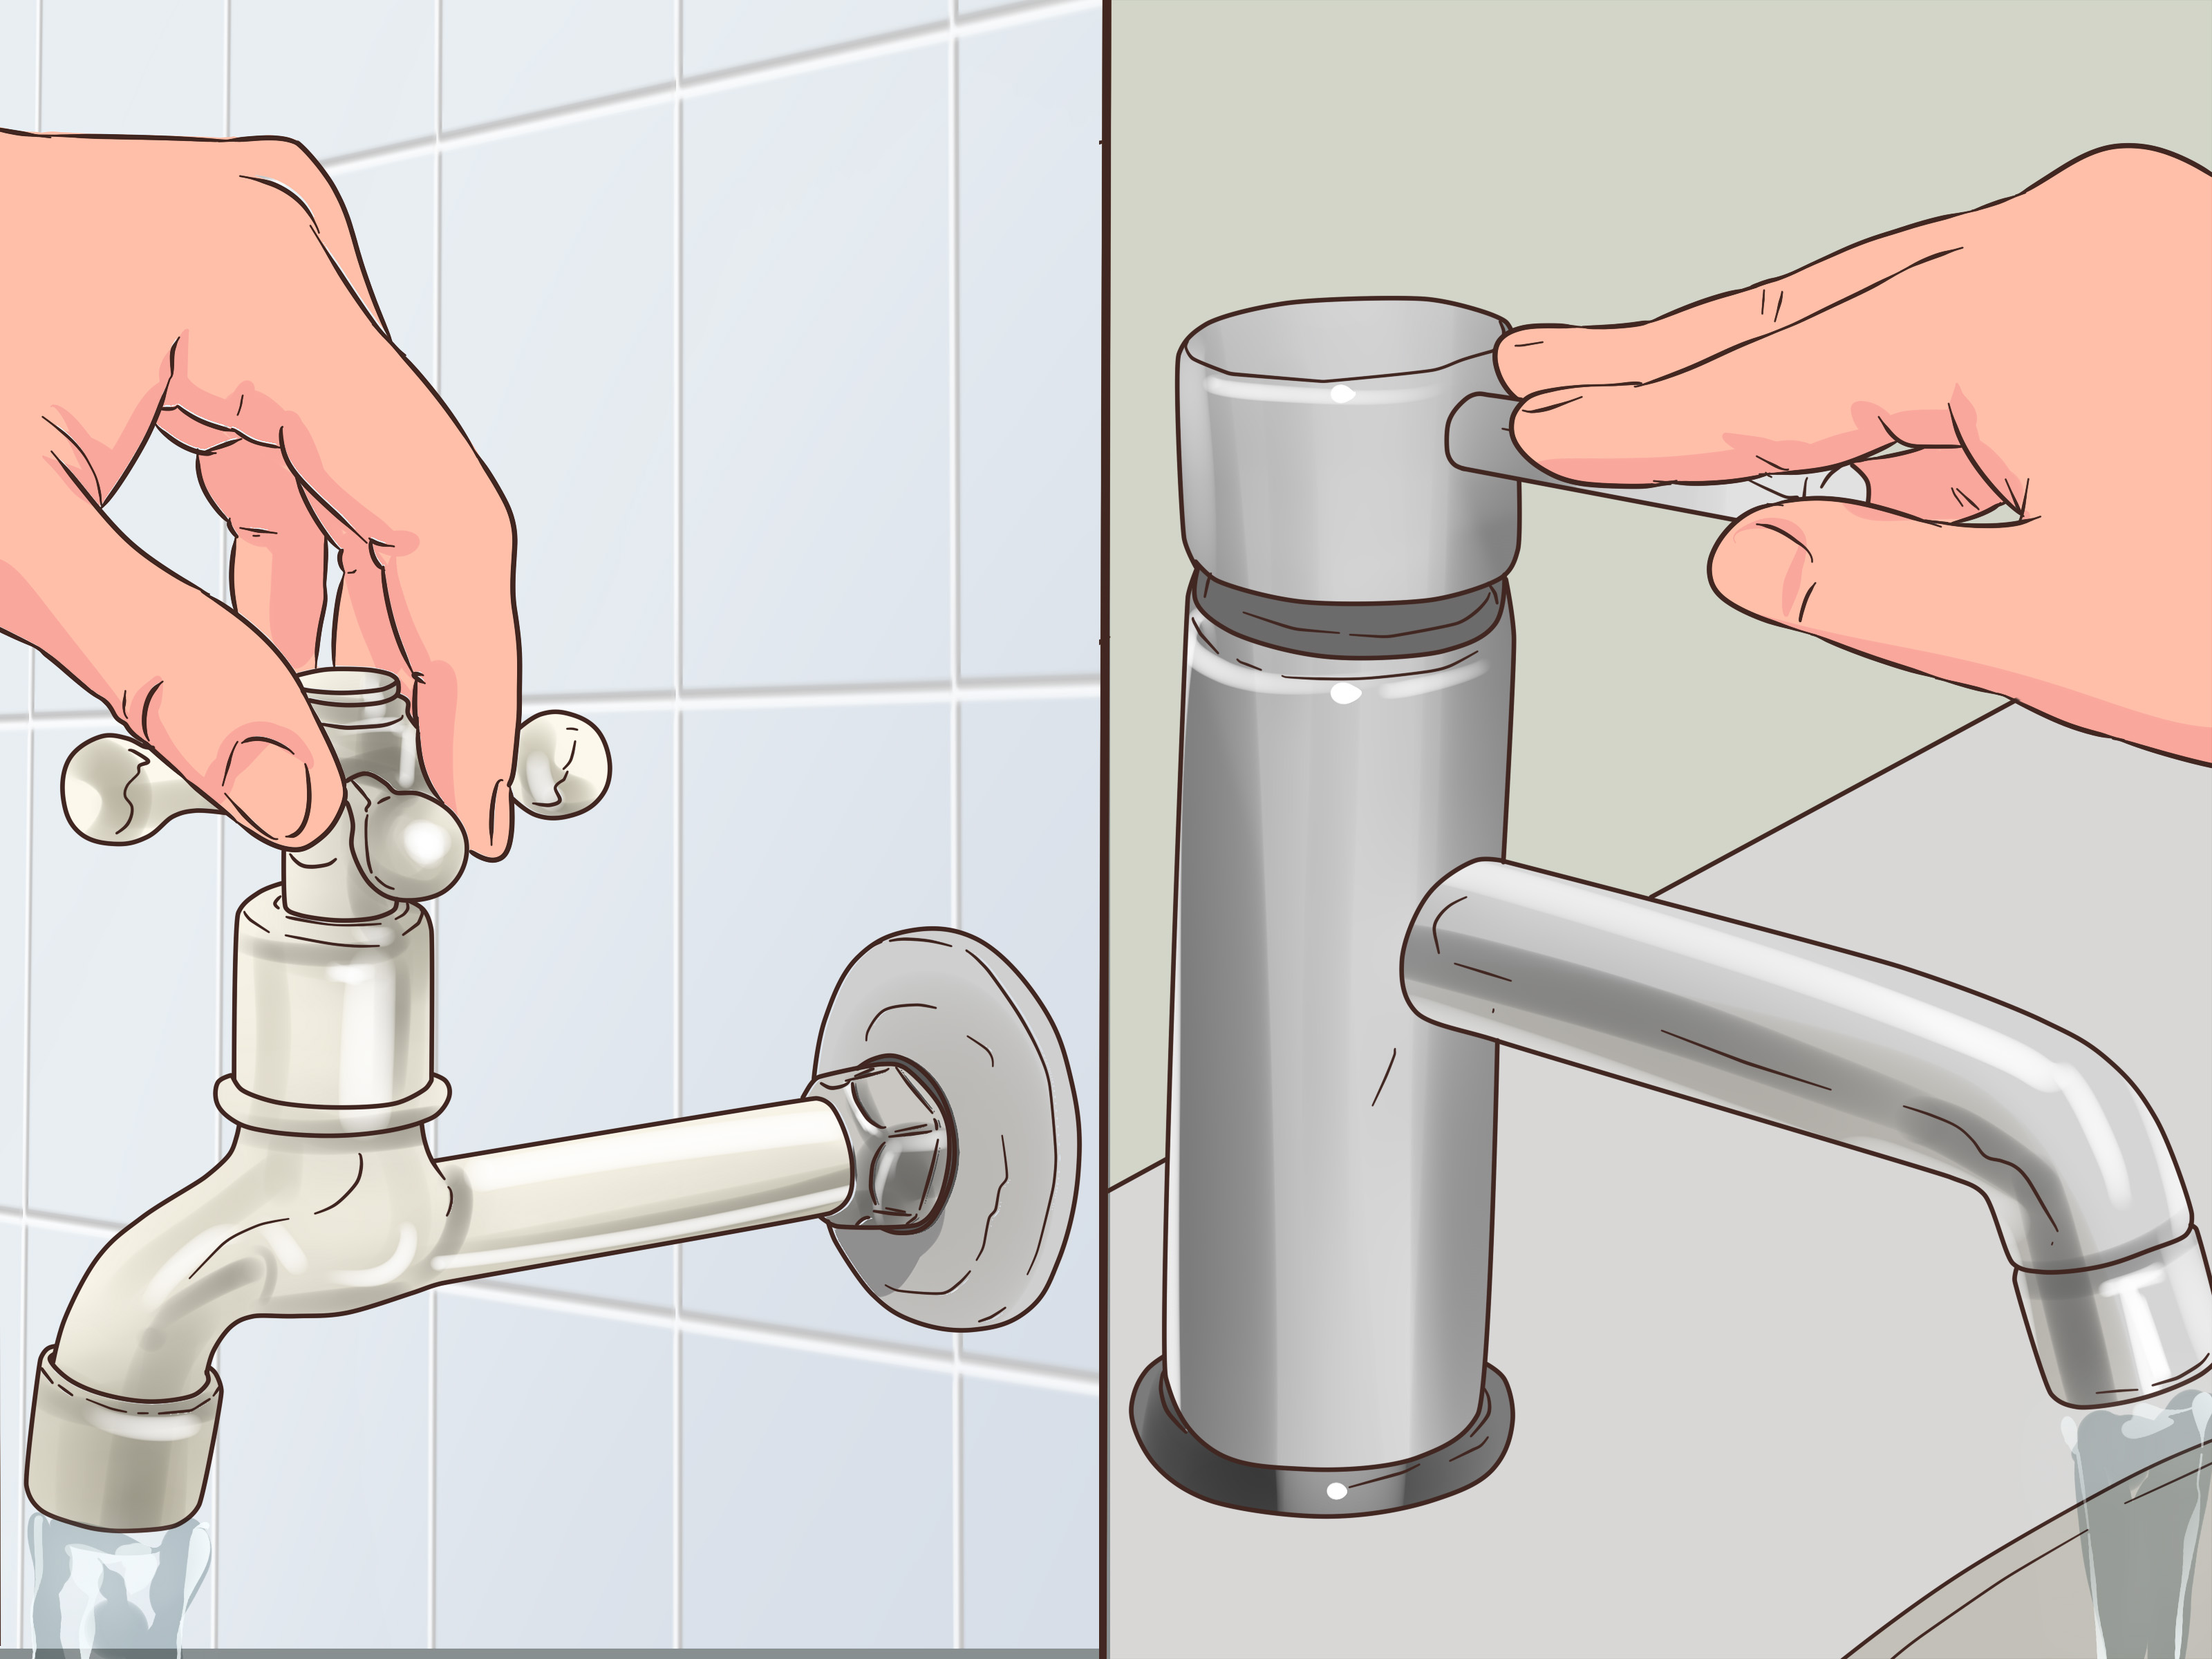 5 ways to turn water back on wikihow